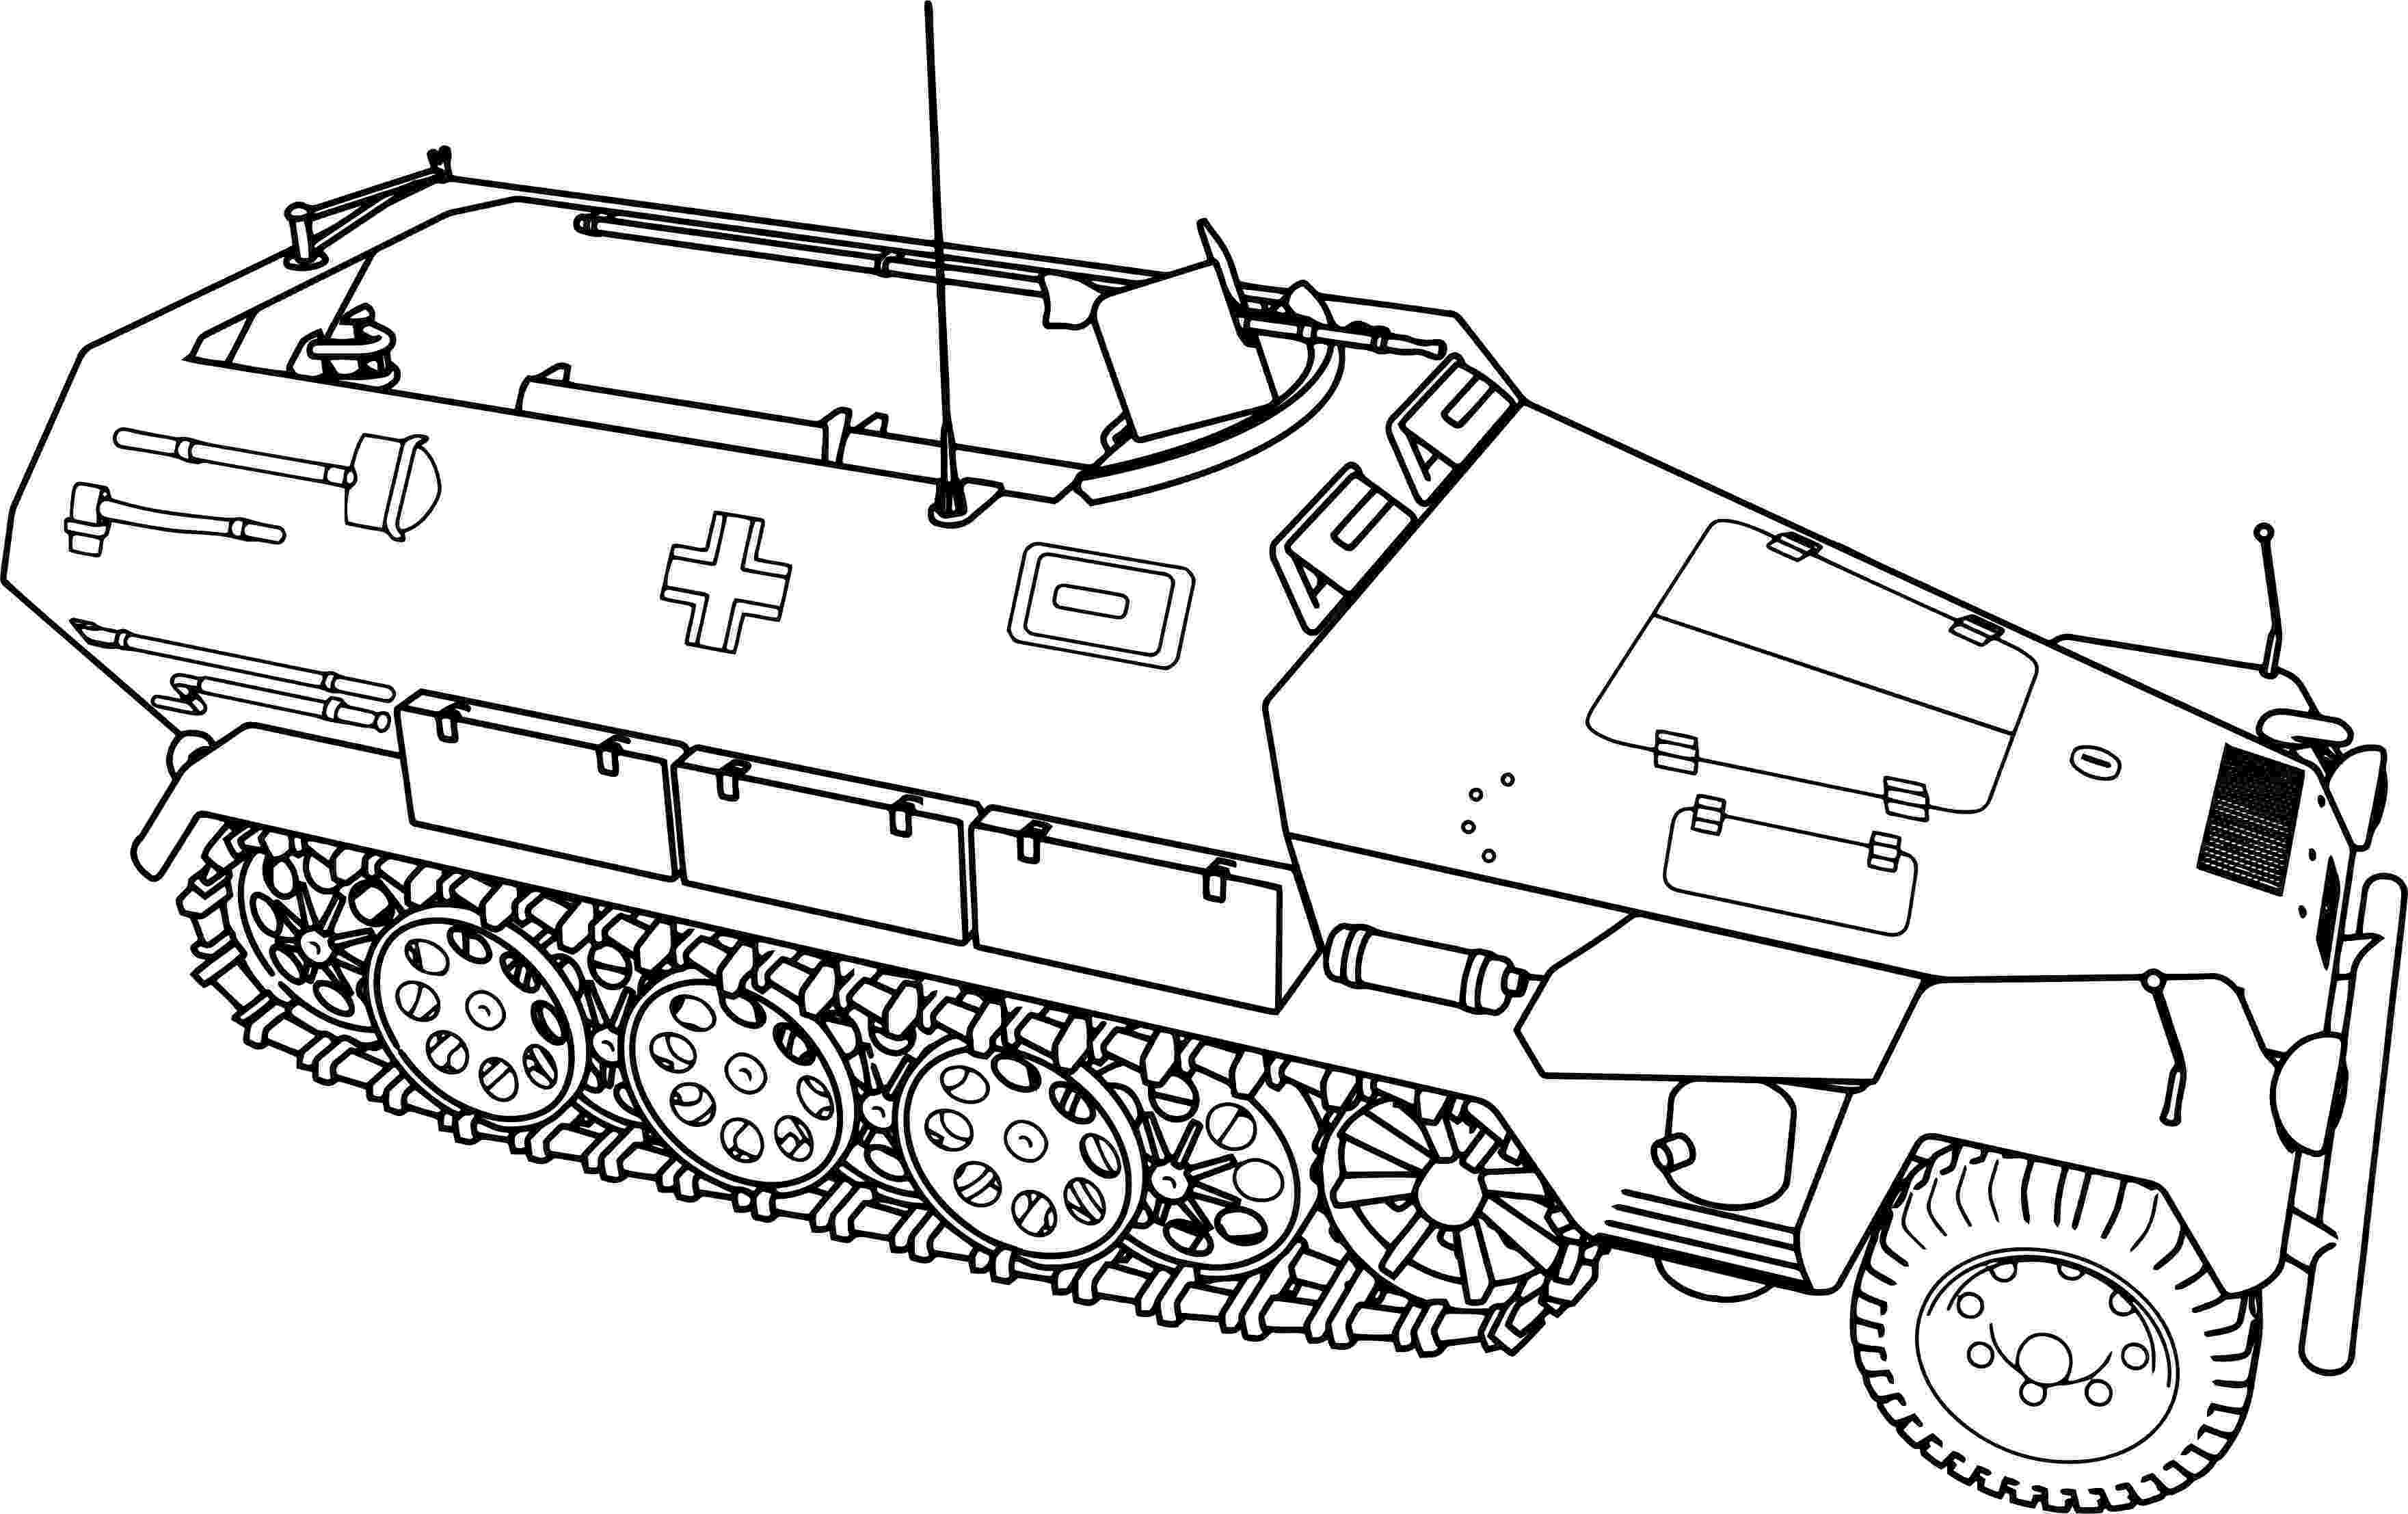 tank pictures to color tanks coloratornet Сoloring pages for children to pictures color tank